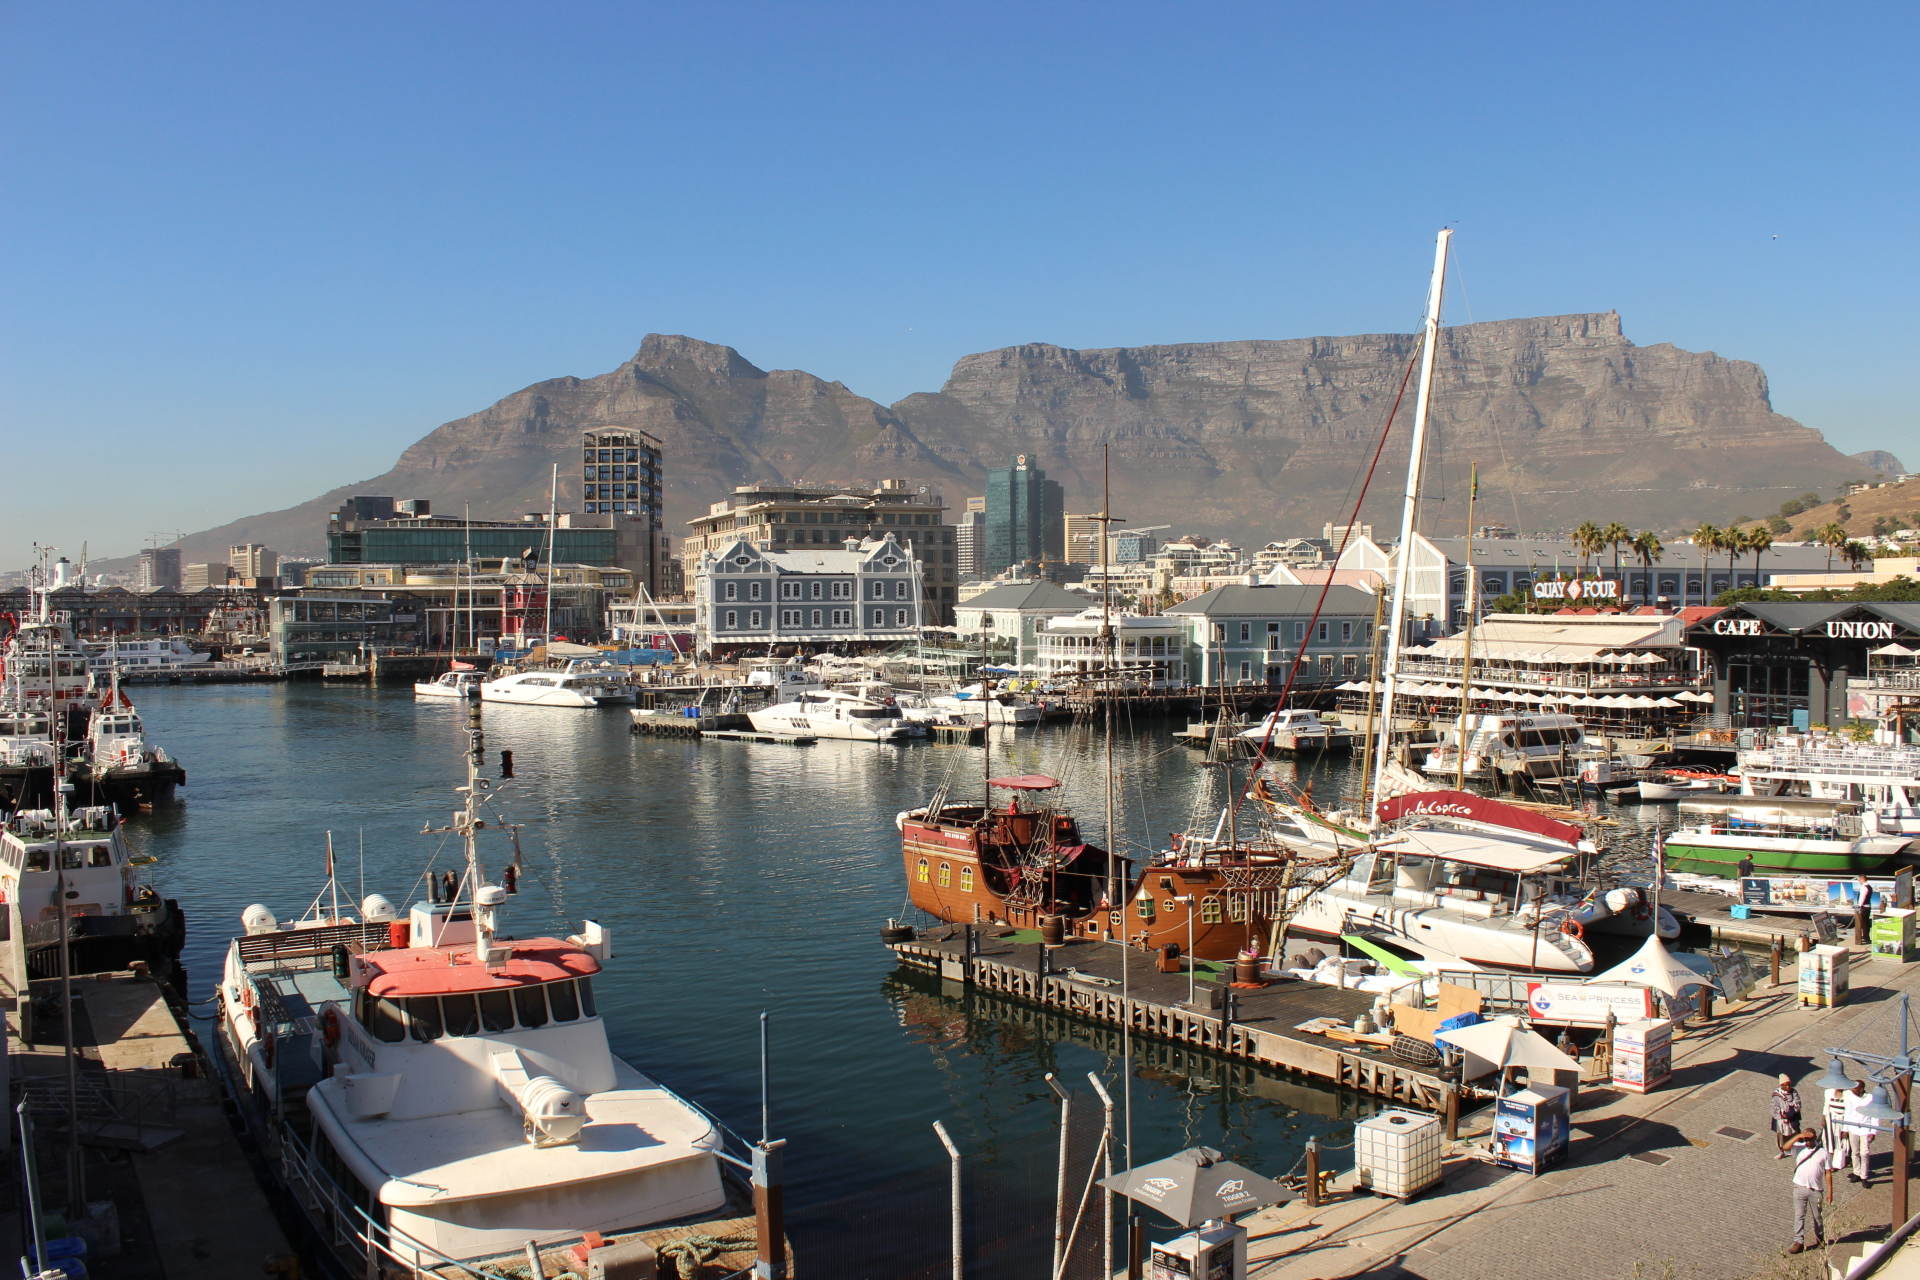 2018 South Africa Trip, Part 6: Cape Town Sunrise and V&A Waterfront